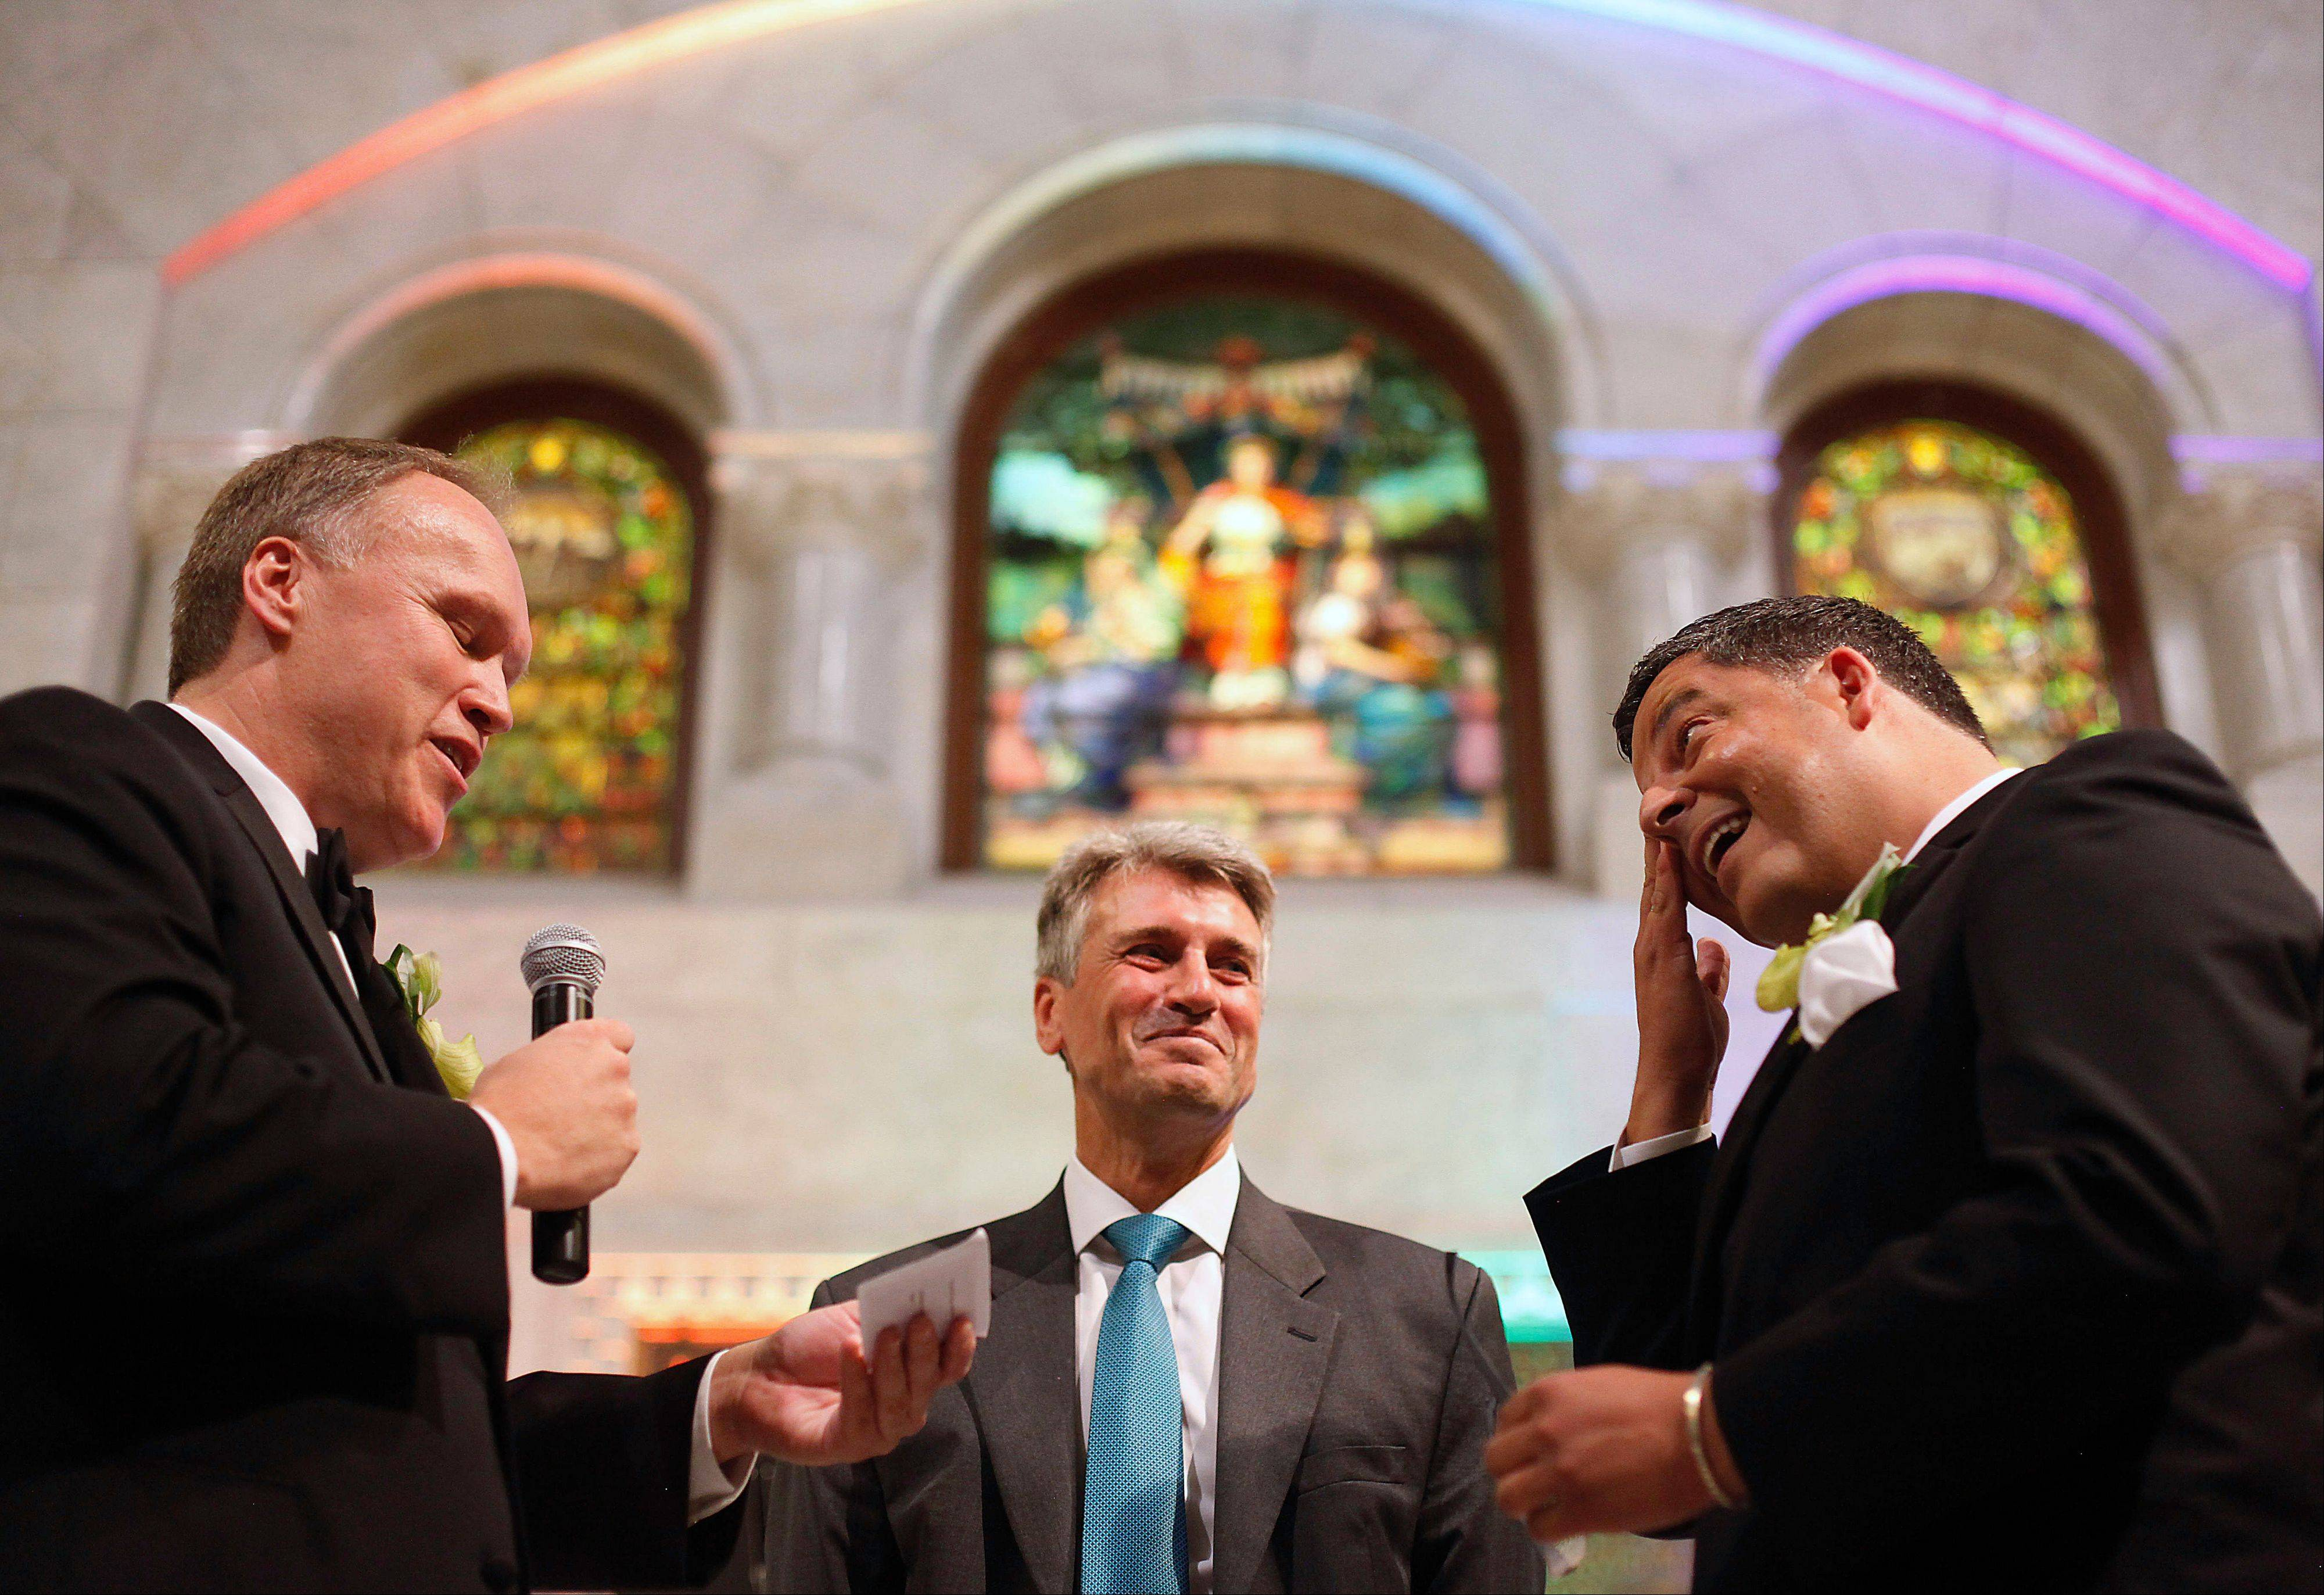 Minneapolis Mayor R.T. Rybak, center, officiates at the wedding of Al Giraud, right, and his partner, Jeff Isaacson, at the Minneapolis City Hall. They were the first gay couple legally married in Minnesota. Rybak is hitting the road to promote his state�s new gay marriage law.